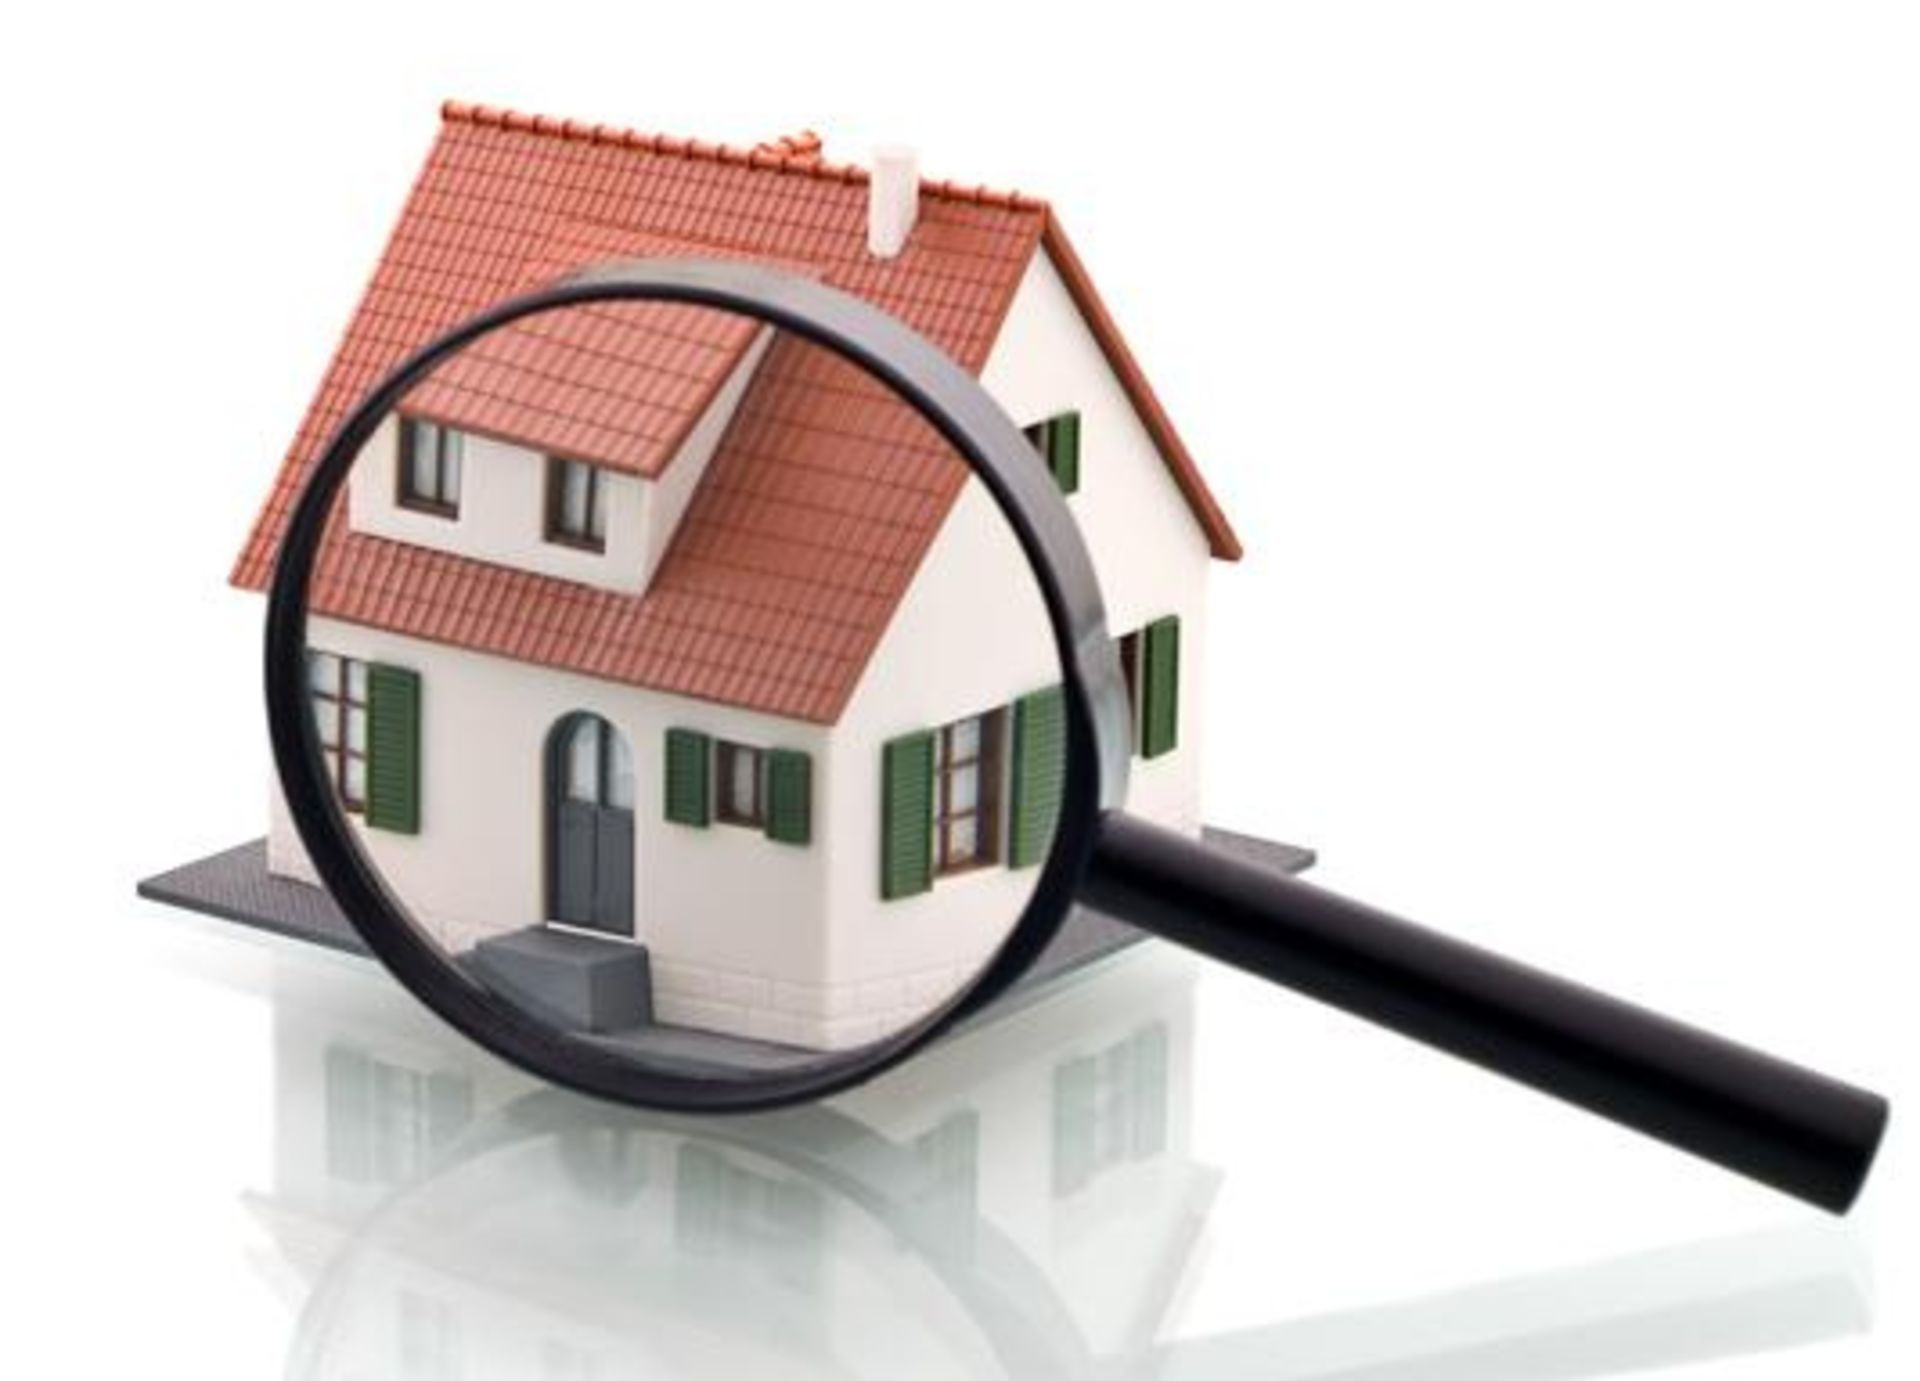 9 Crucial Questions to Ask Before Hiring a Home Inspector